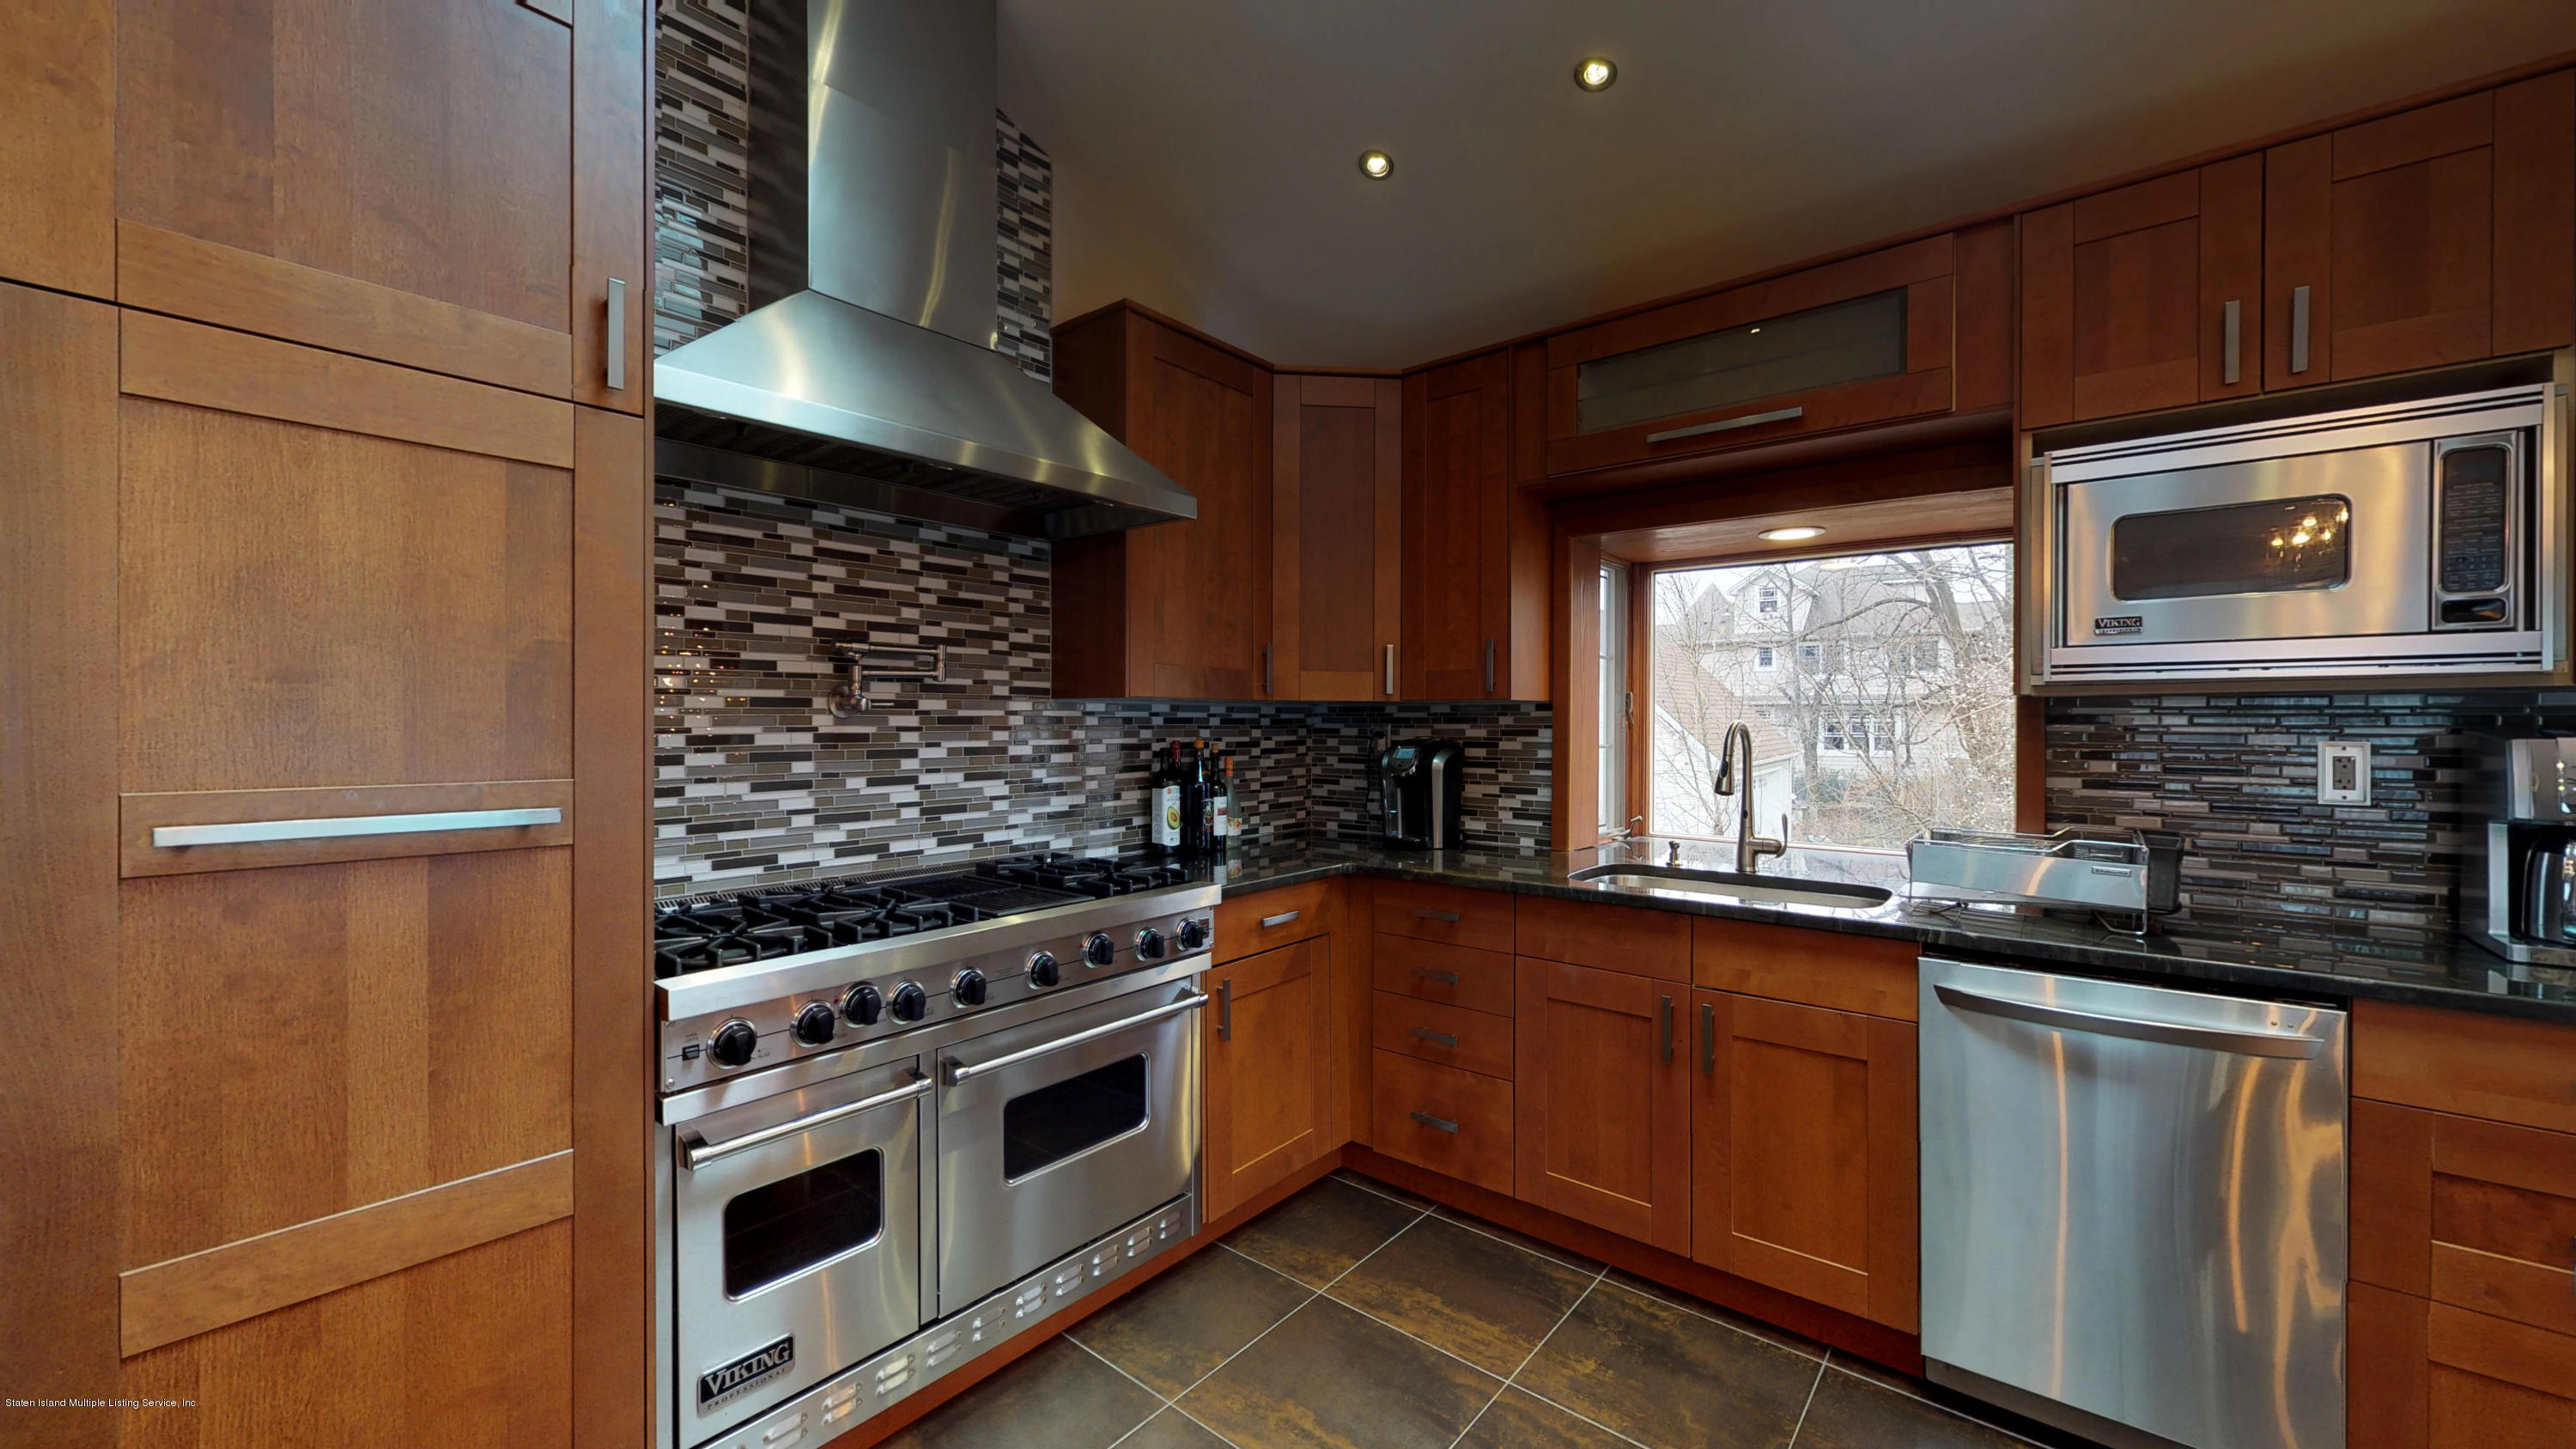 Single Family - Detached 8 Bland Place  Staten Island, NY 10312, MLS-1124910-17